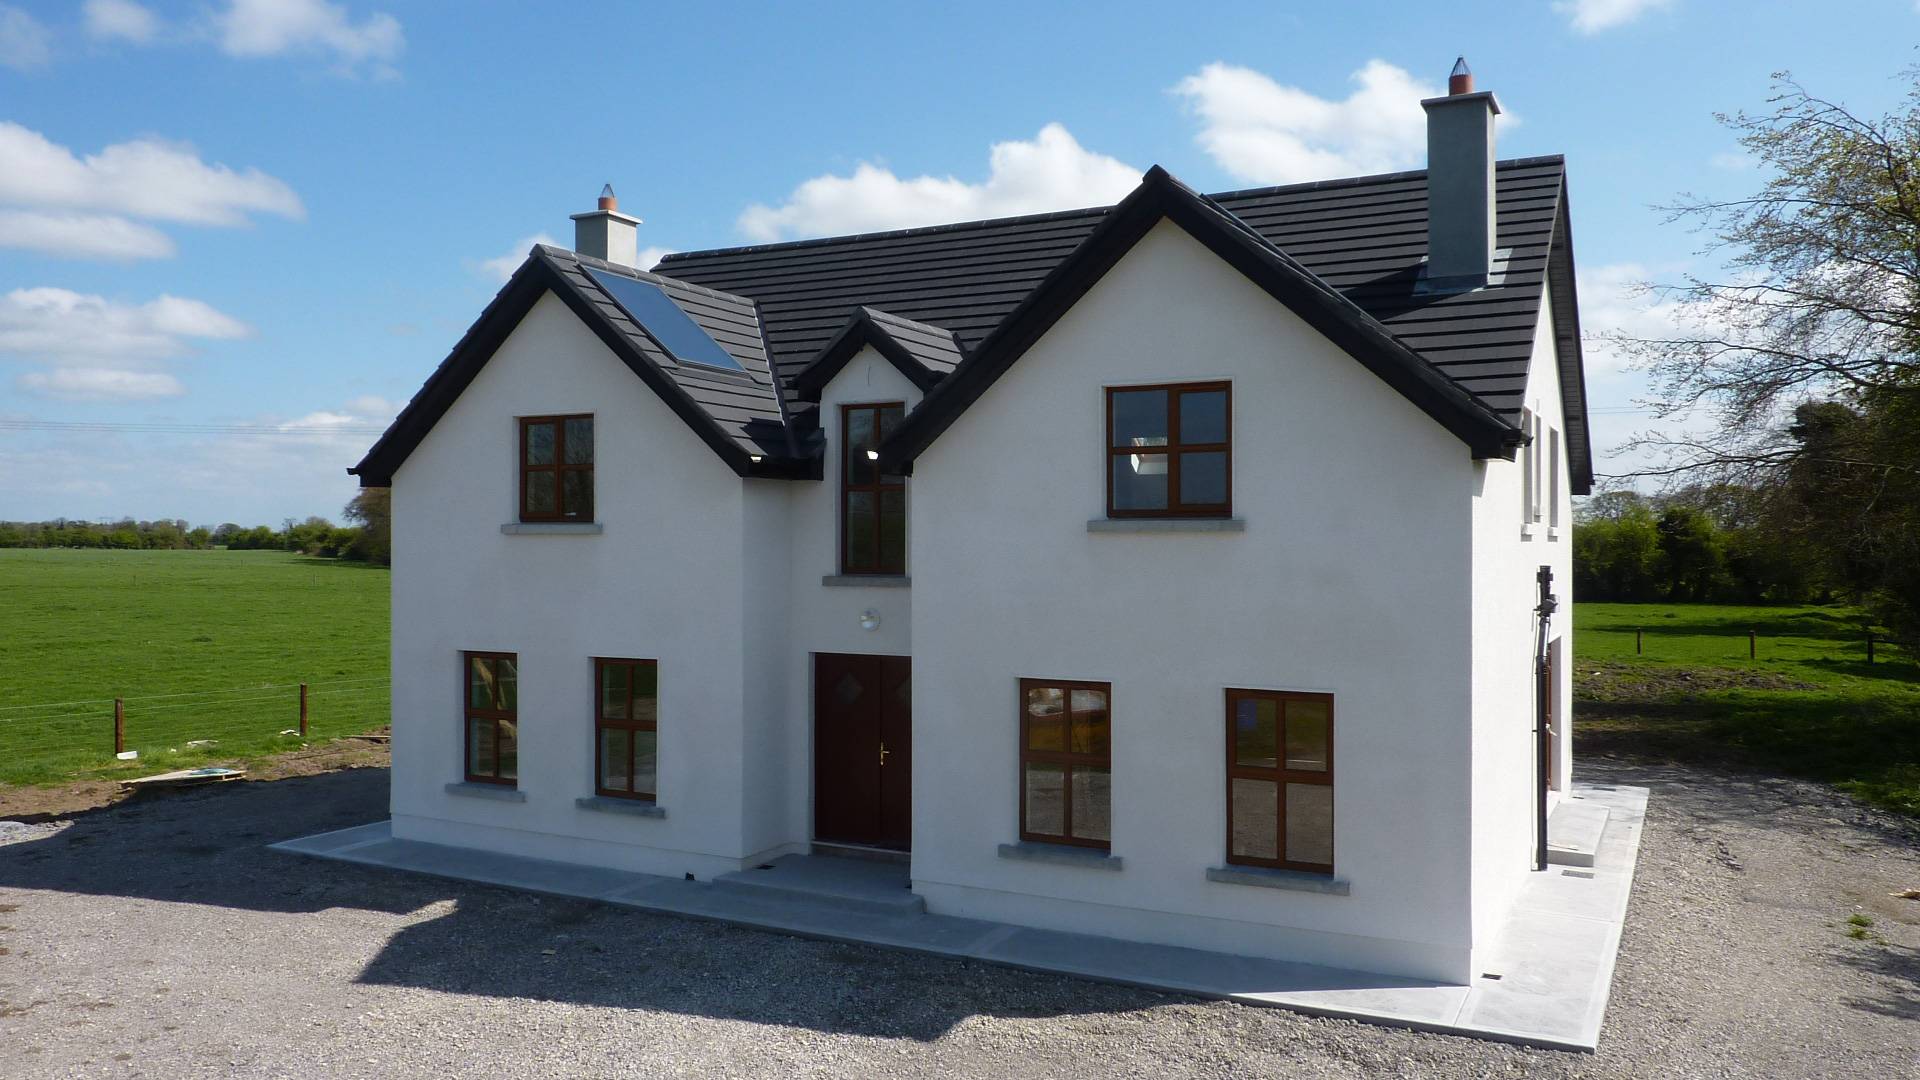 One and half story house plans ireland for Irish house plans